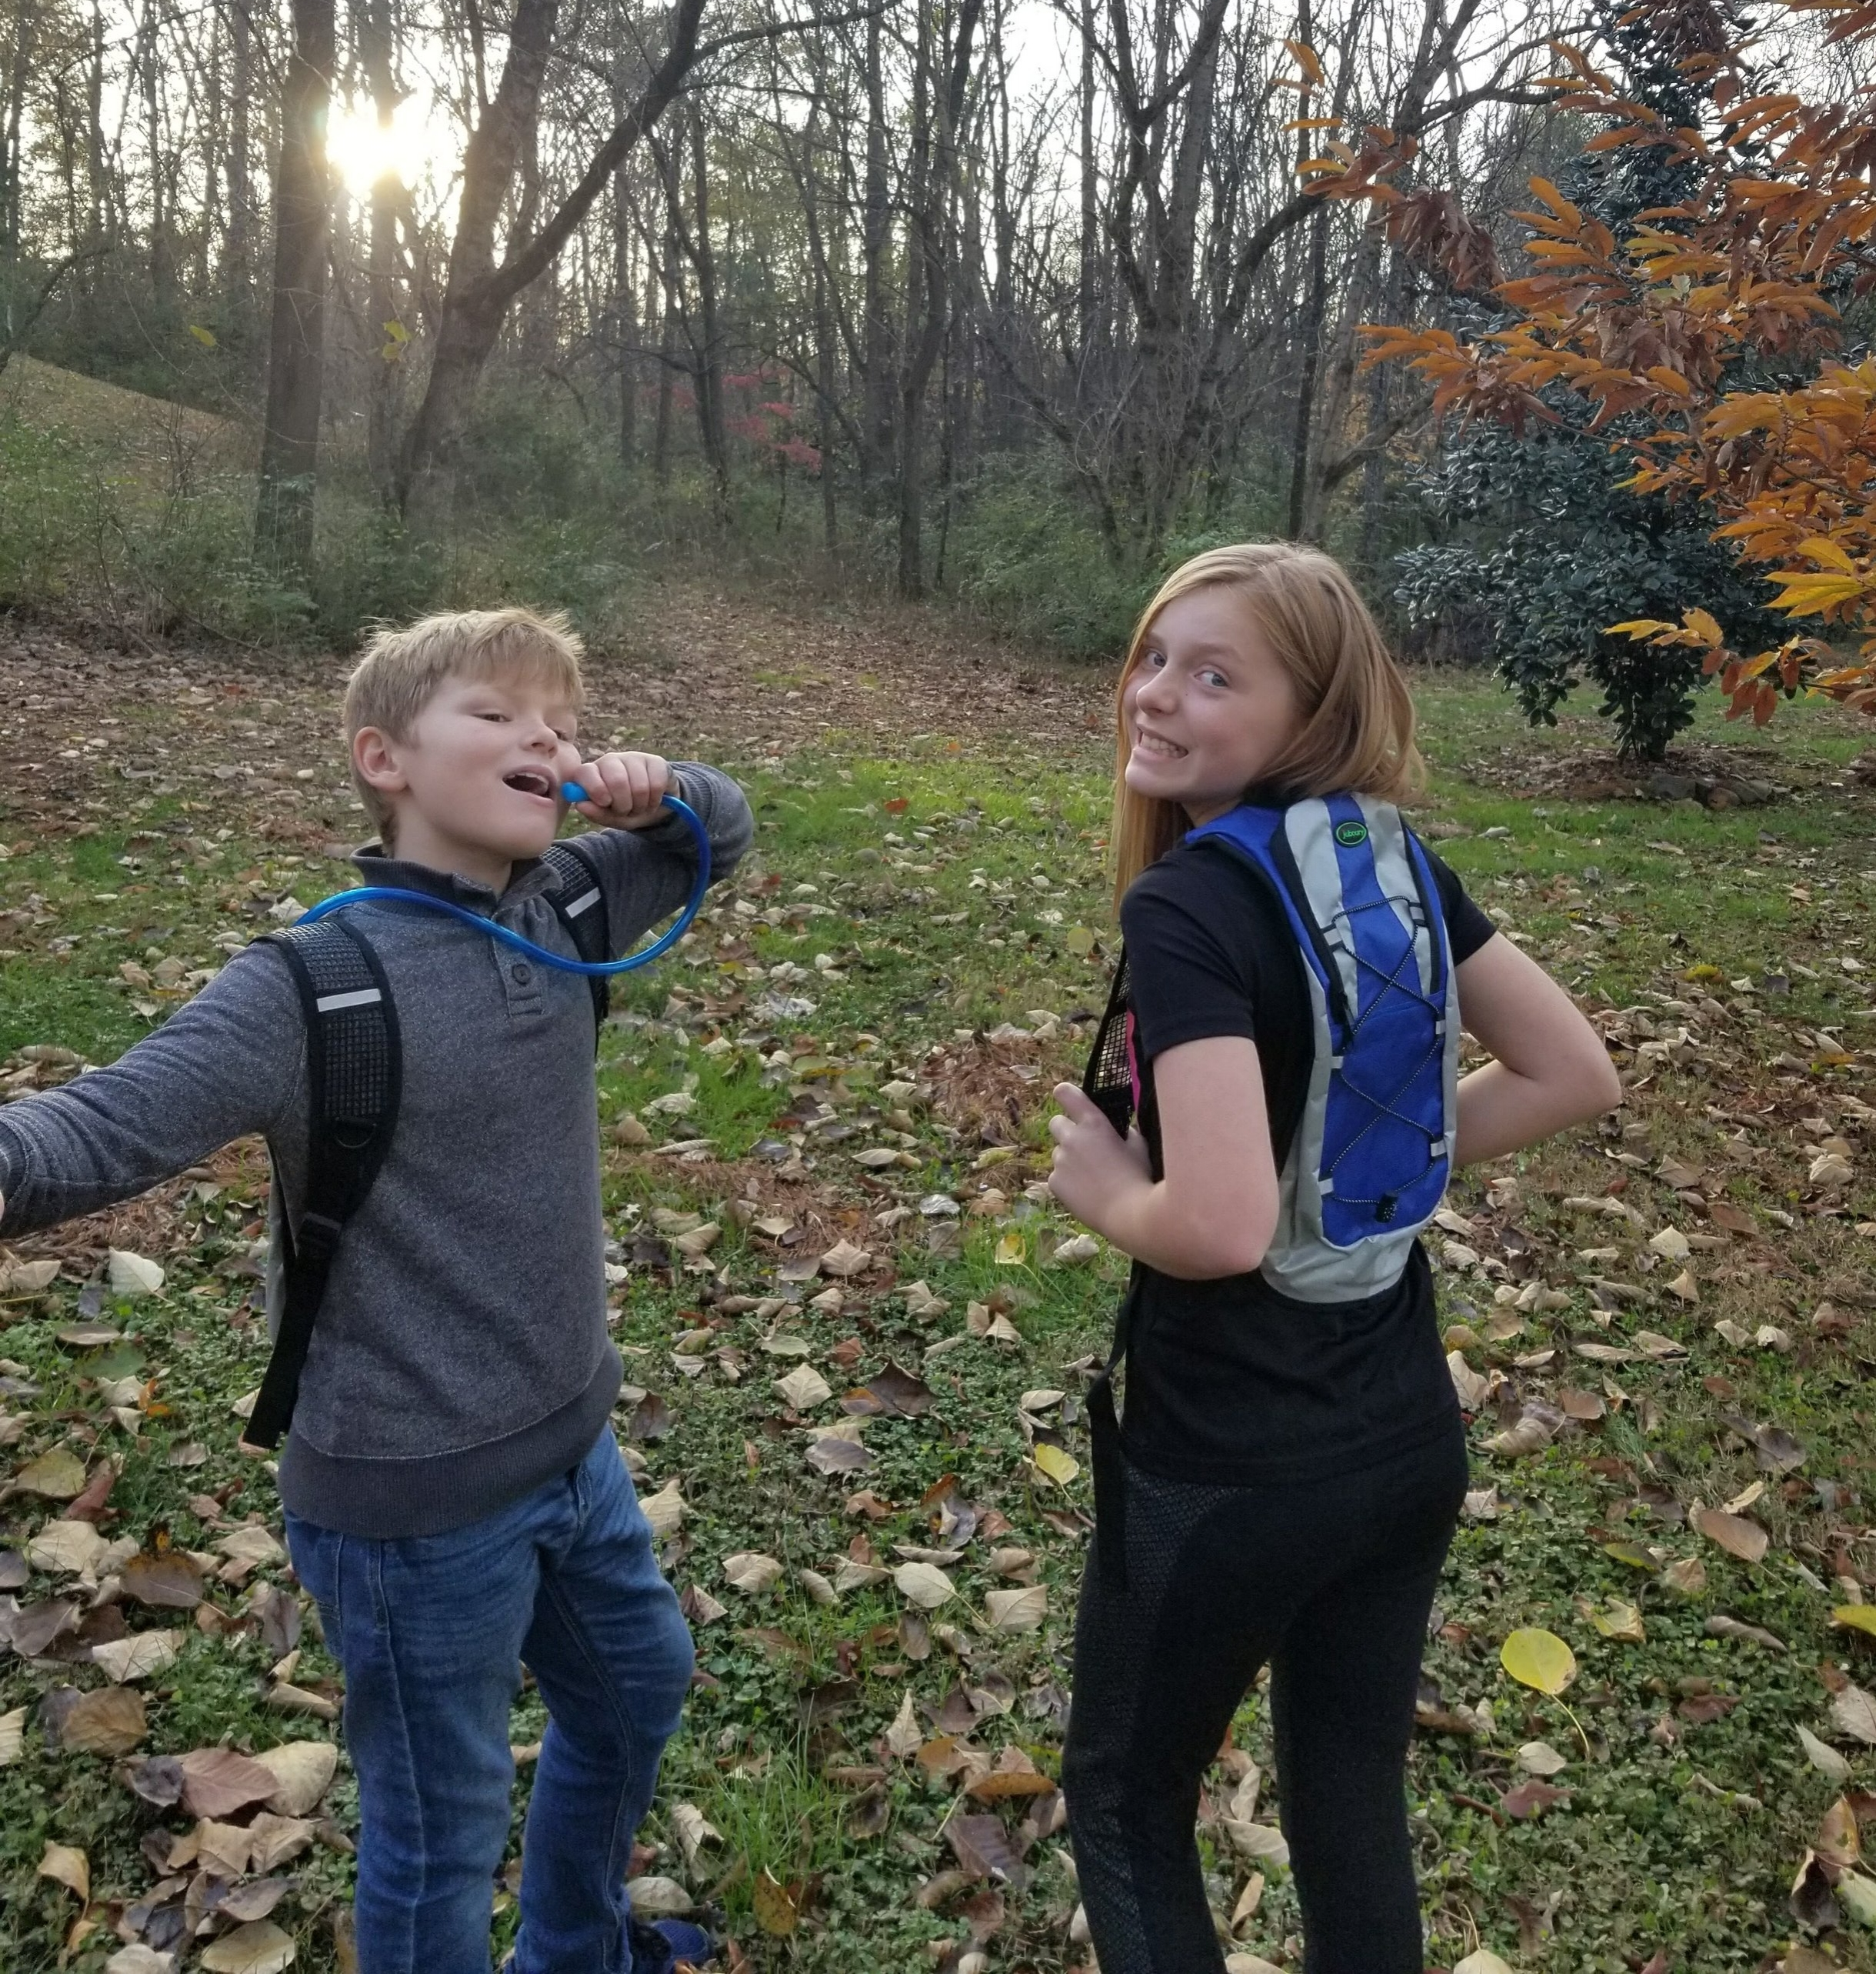 The kids demonstrating their hydration packs.